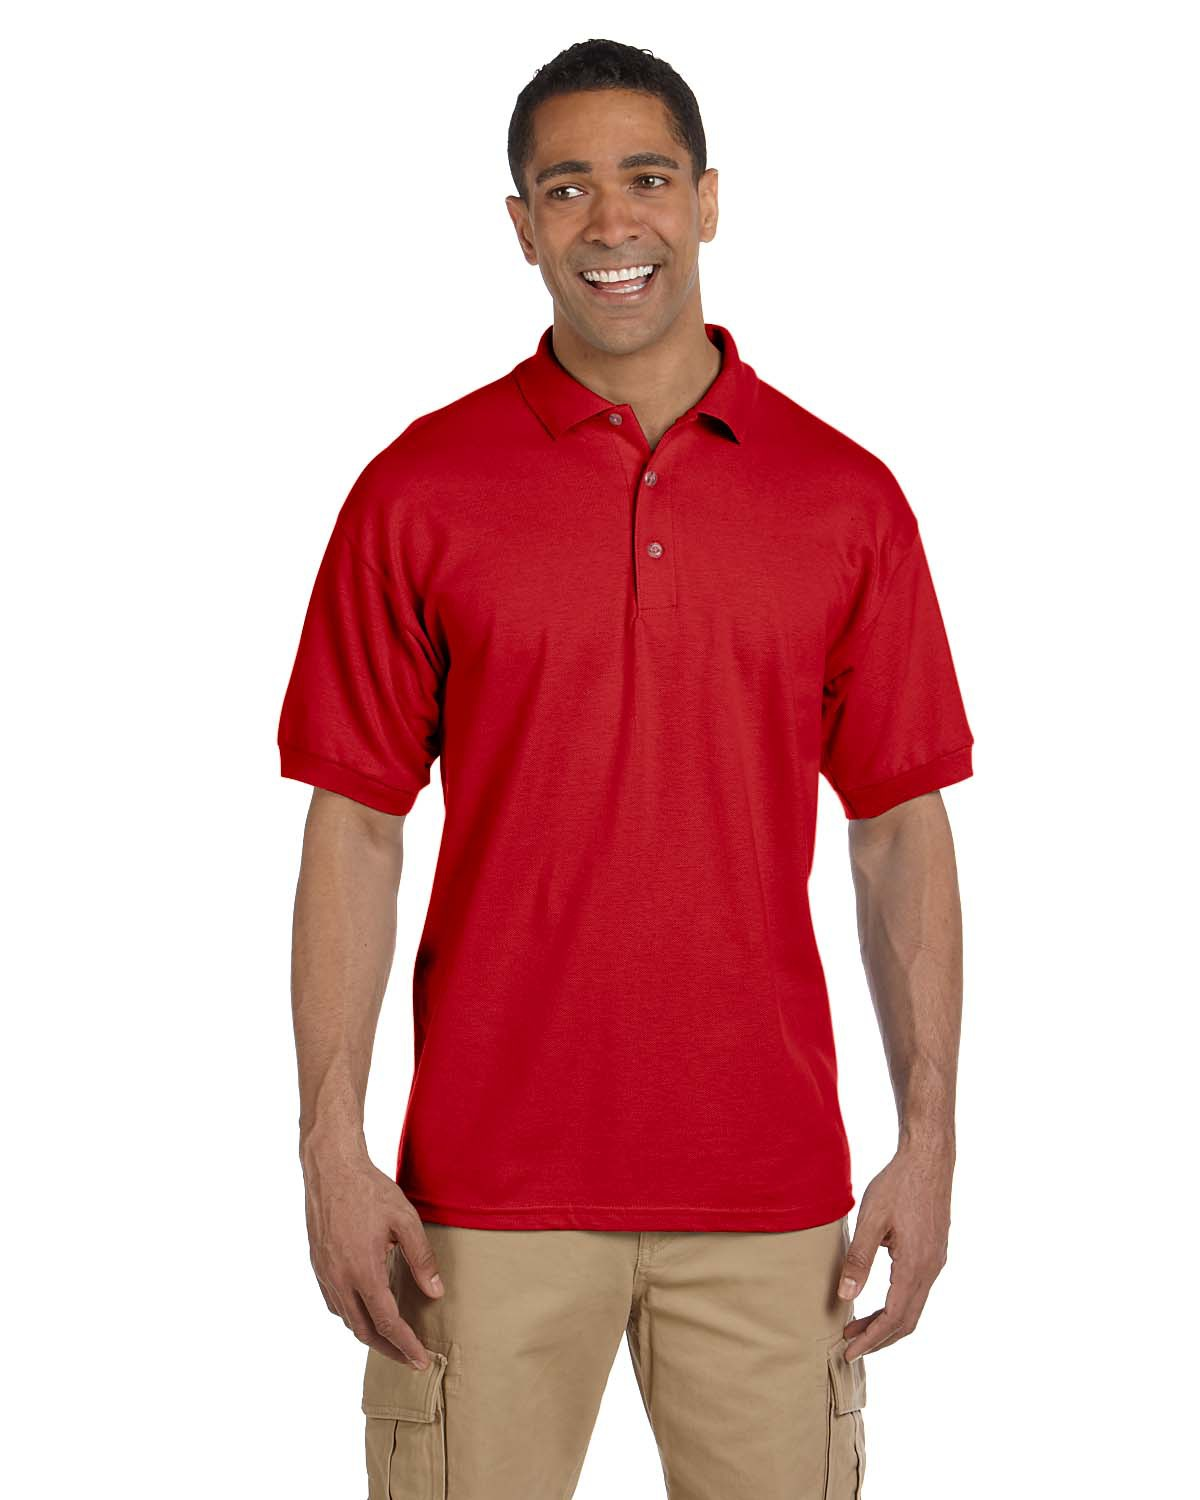 Adult Ultra Cotton® 6.3 oz. Pique Polo